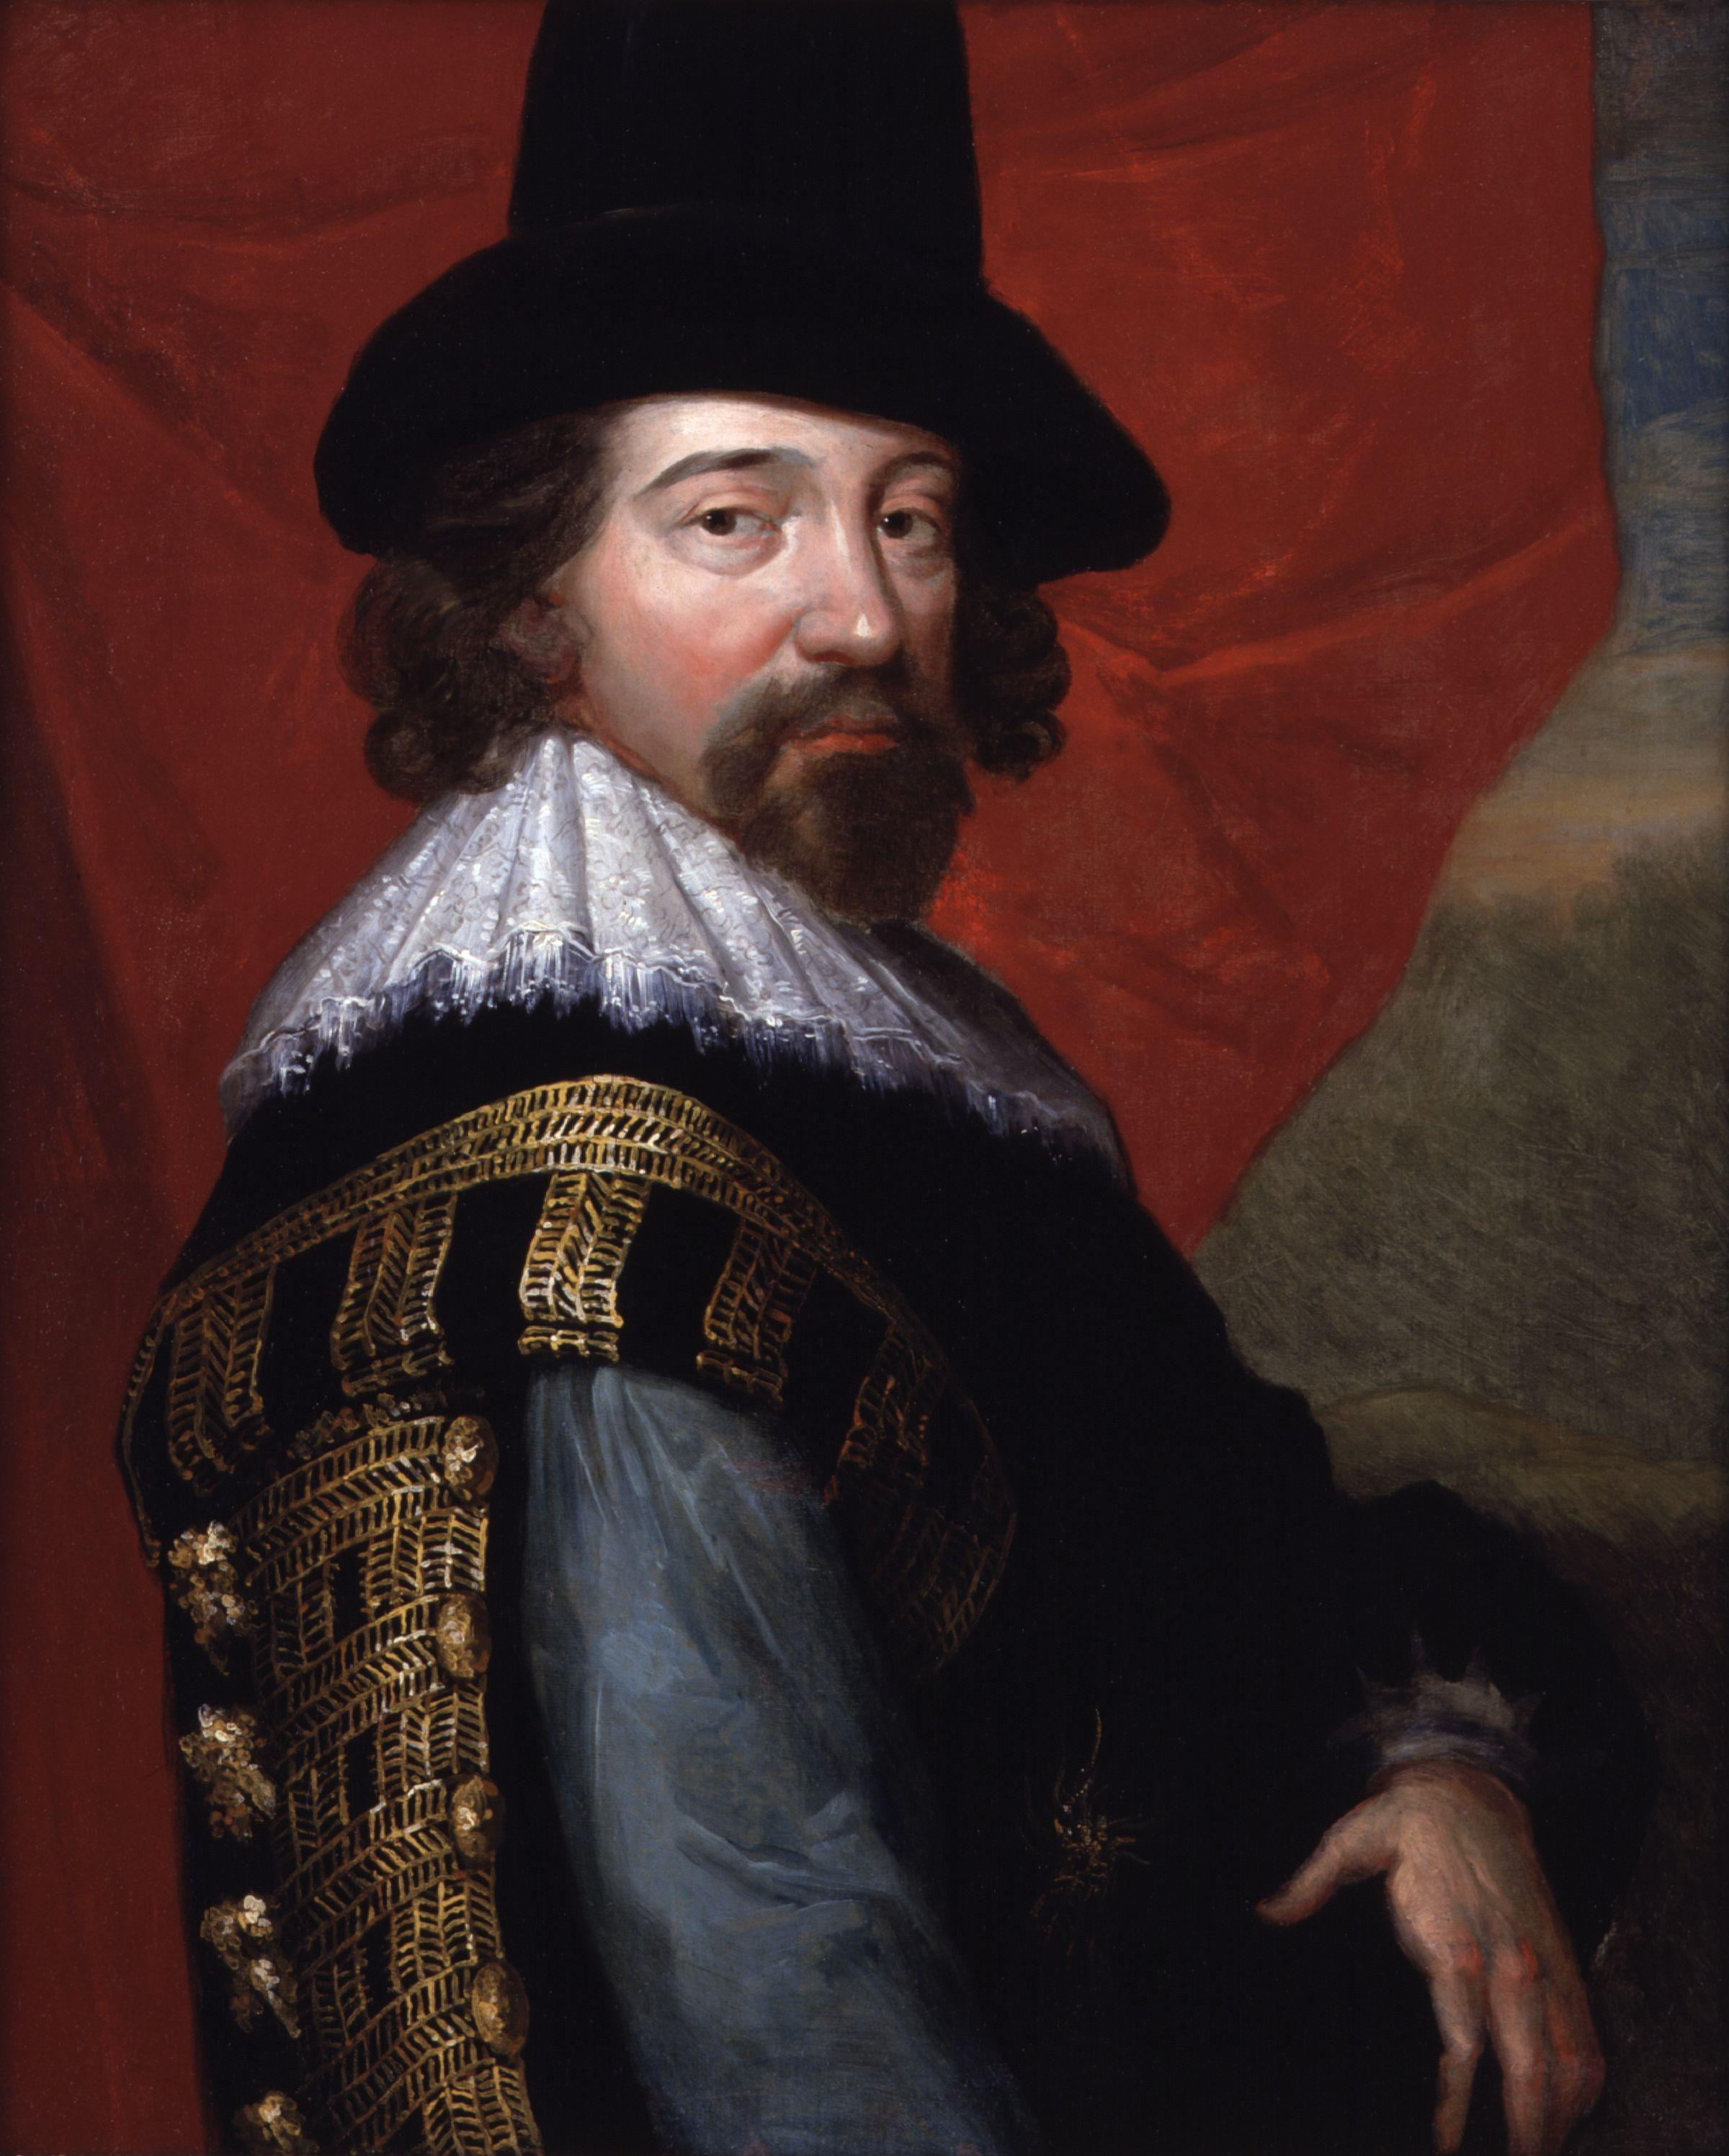 http://upload.wikimedia.org/wikipedia/commons/1/11/Francis_Bacon,_Viscount_St_Alban_from_NPG_(2).jpg